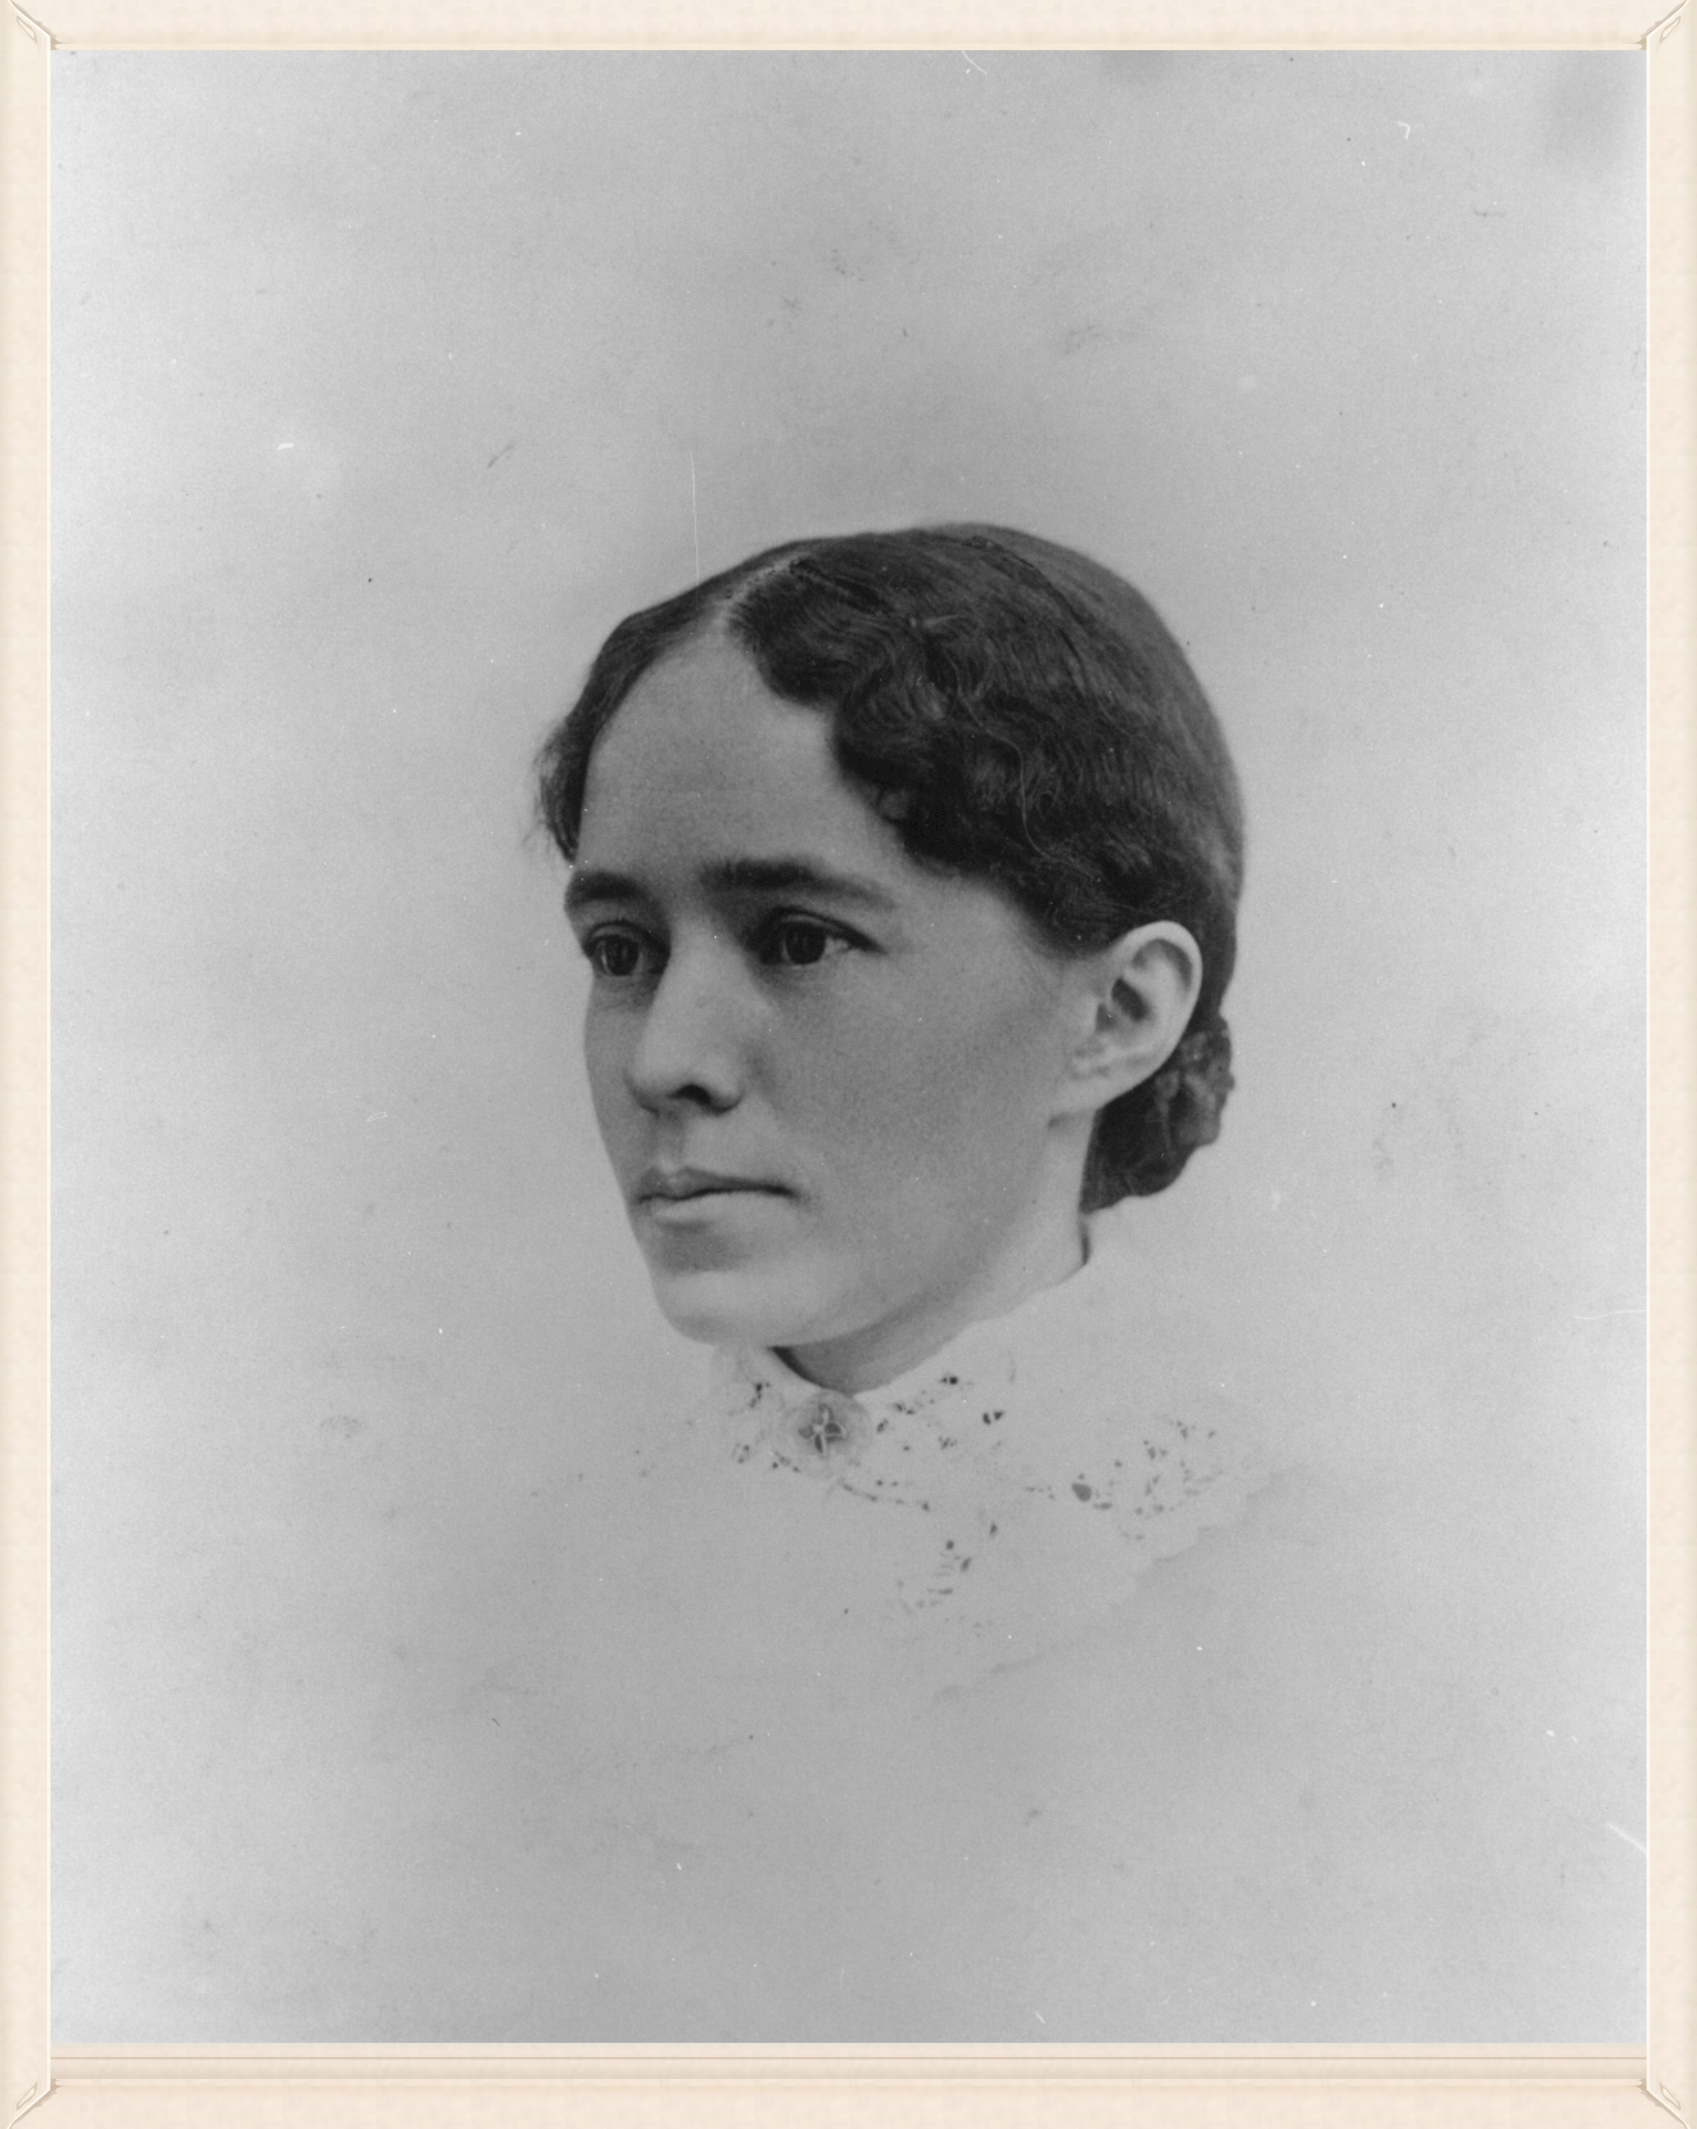 Mary S. Snyder